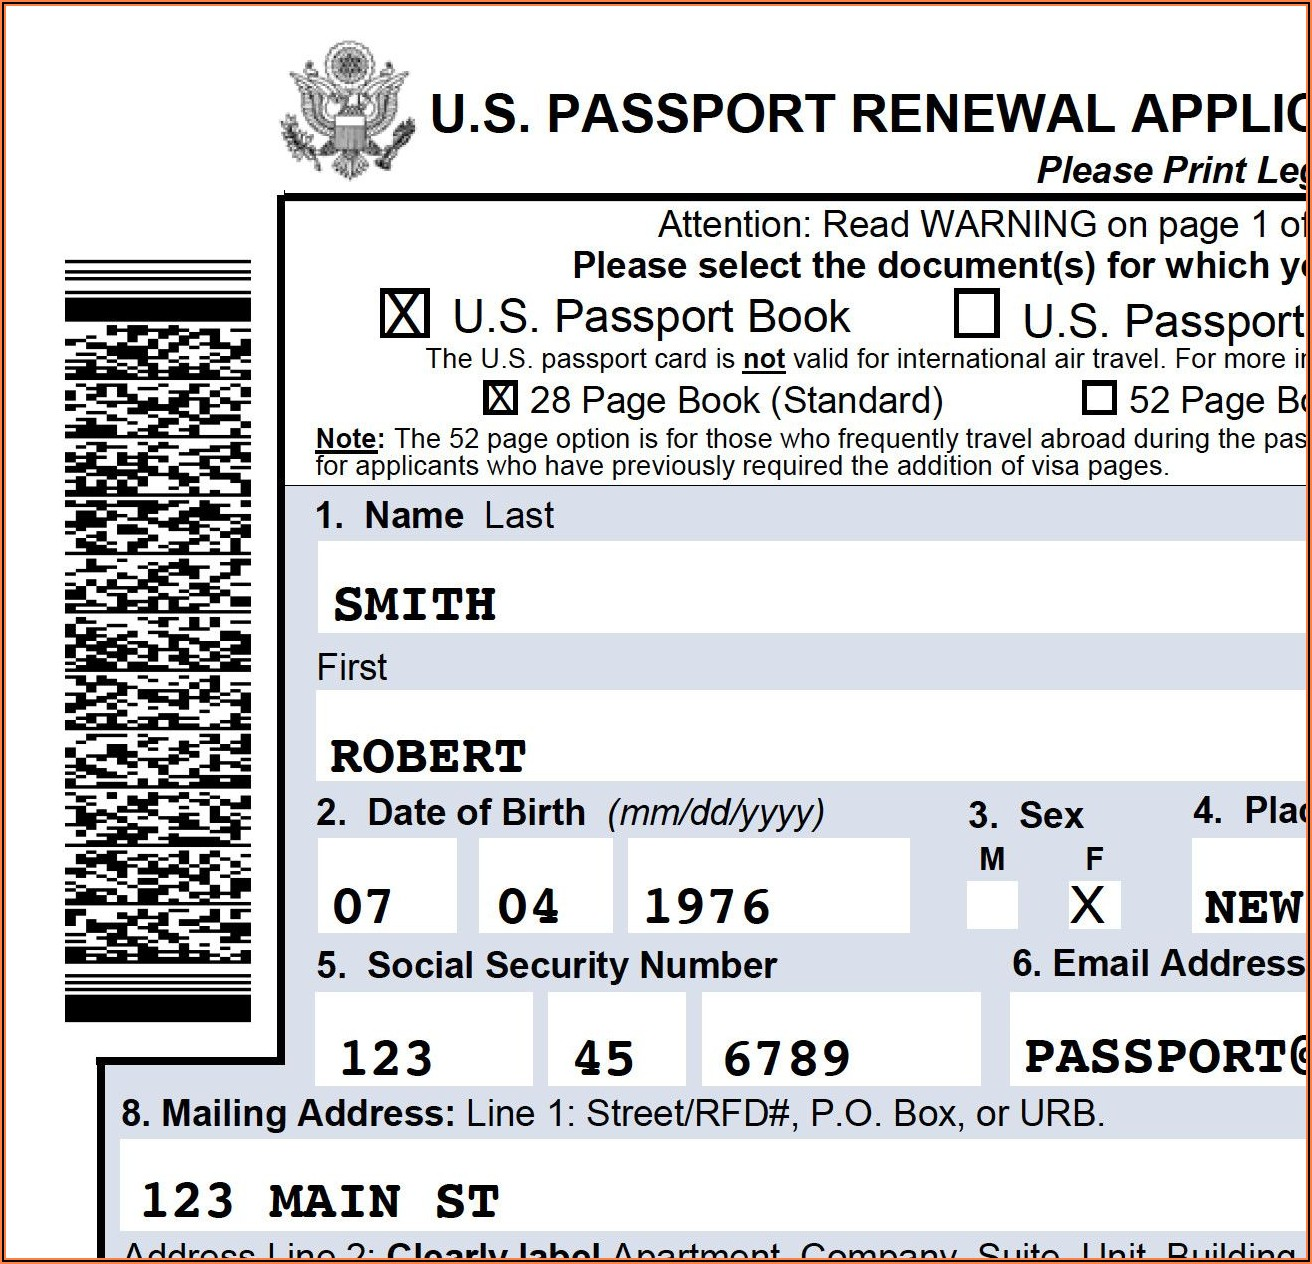 Passport Renewal Form Ds 82